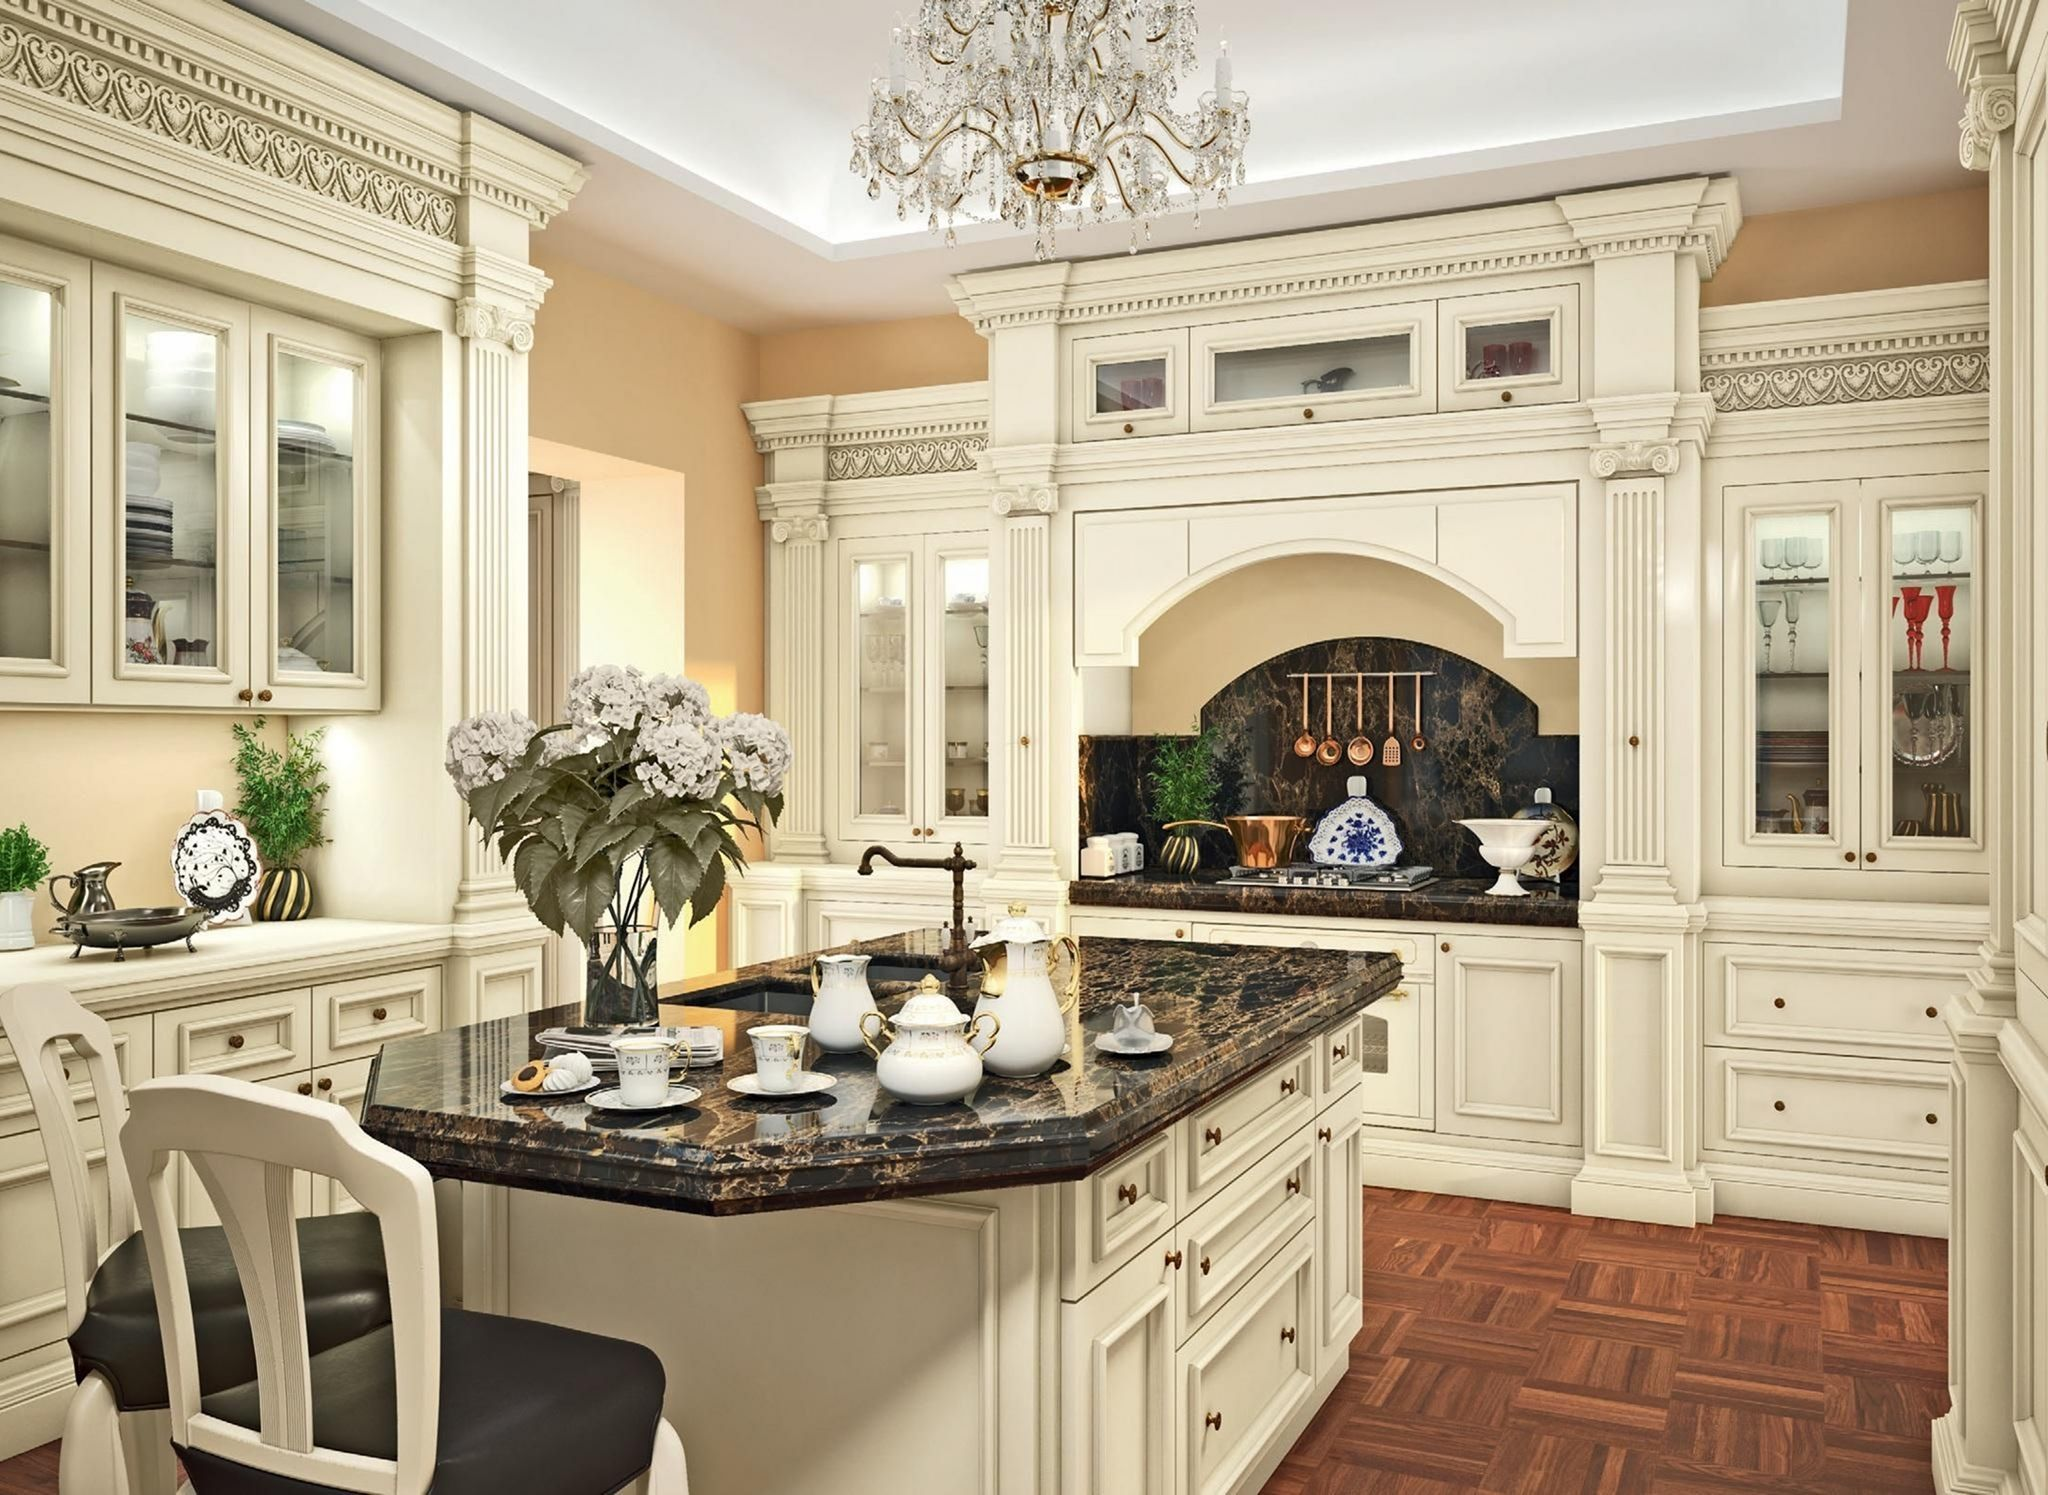 30 Classic Luxurious Kitchen Design Ideas That You Must Know Https